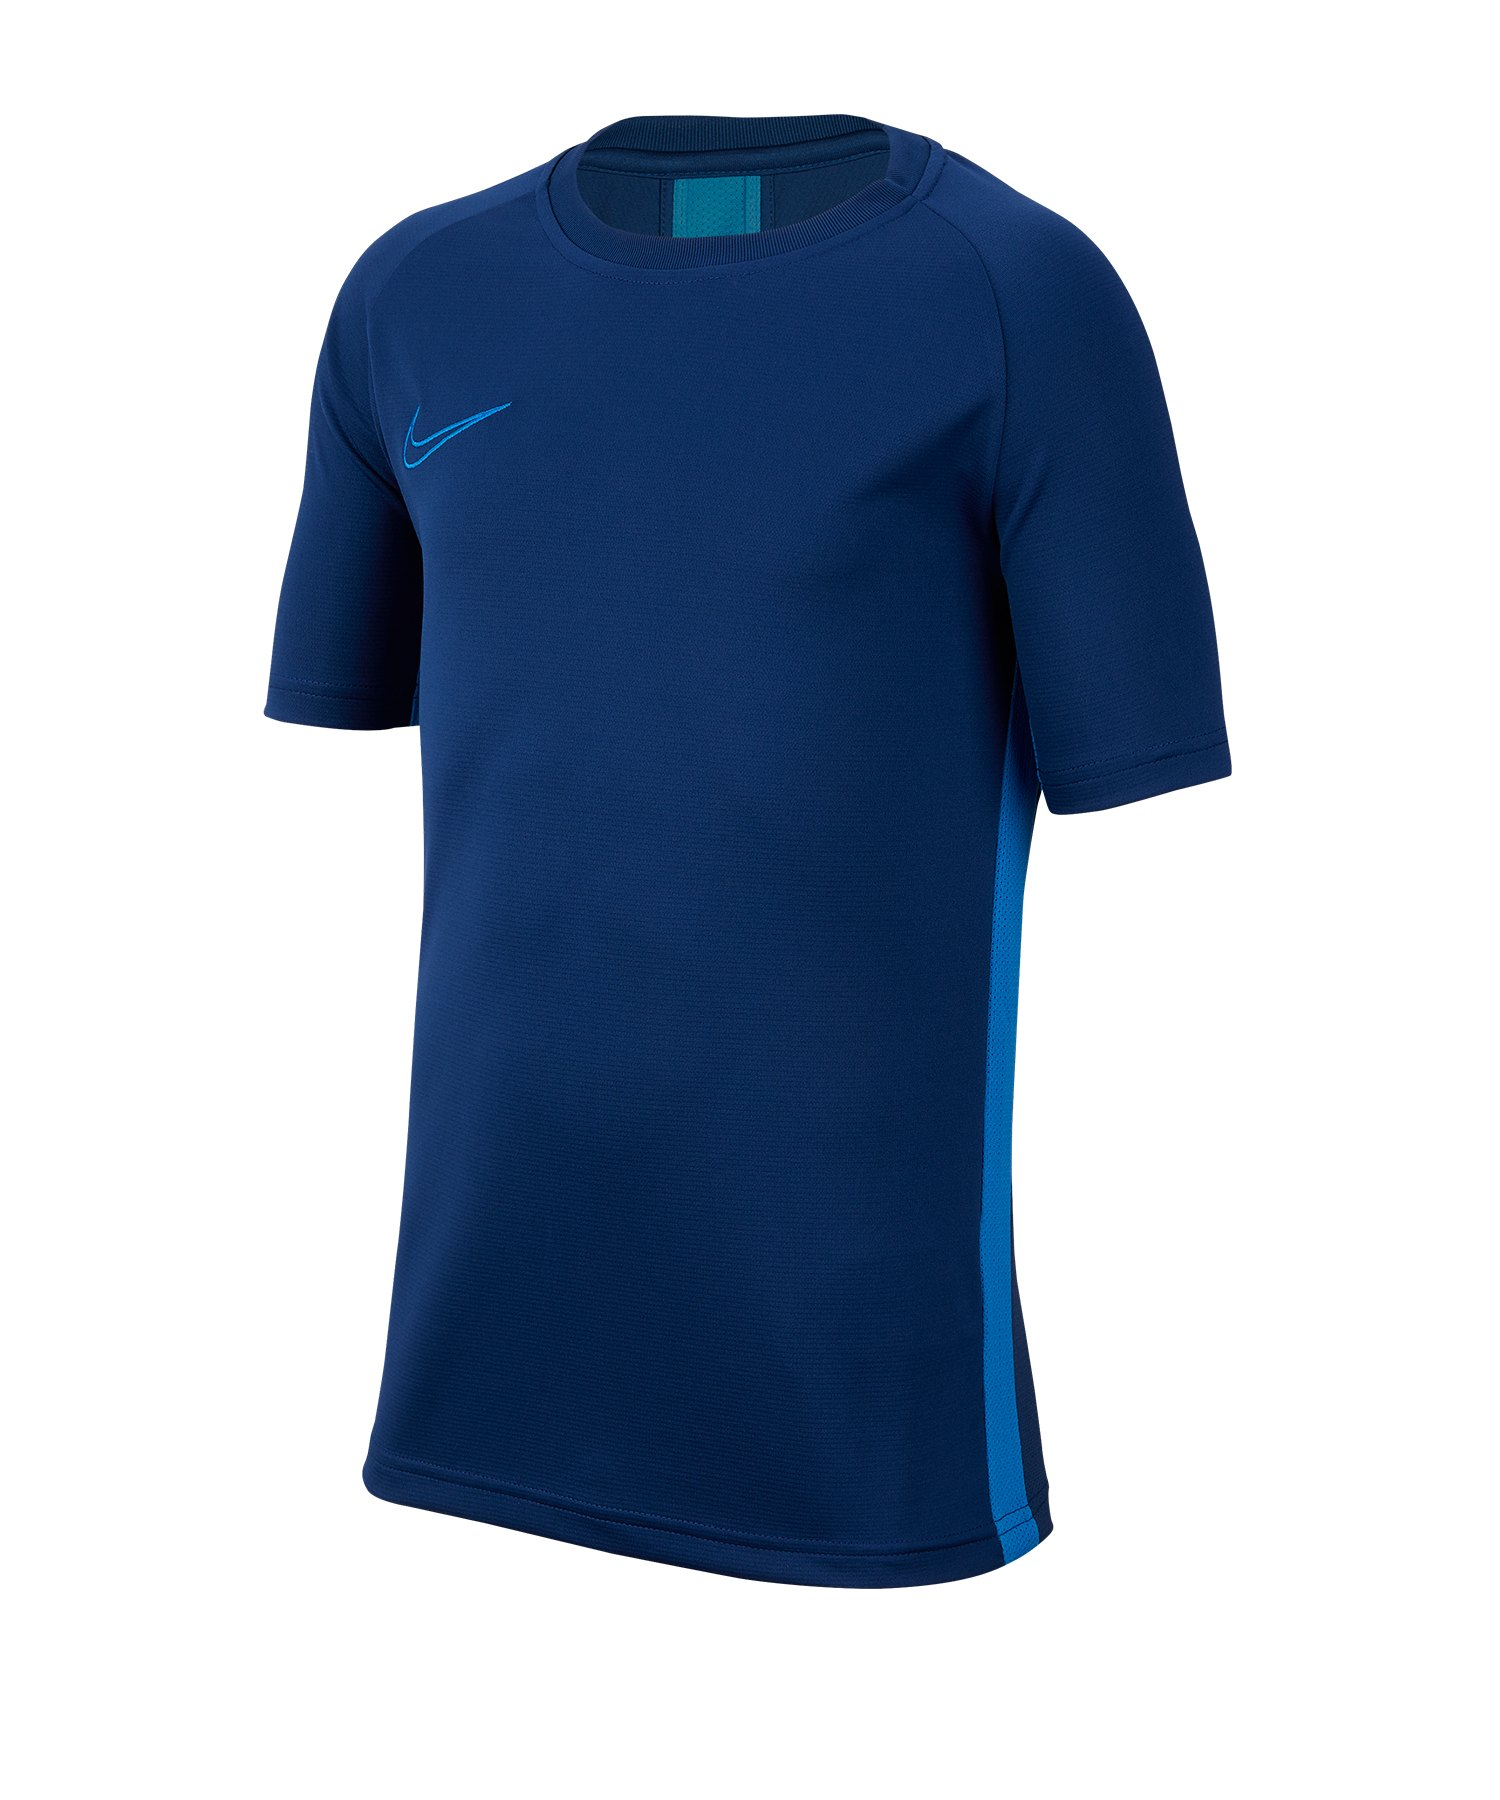 Nike Academy Dri-FIT Top T-Shirt Kids Blau F407 - blau